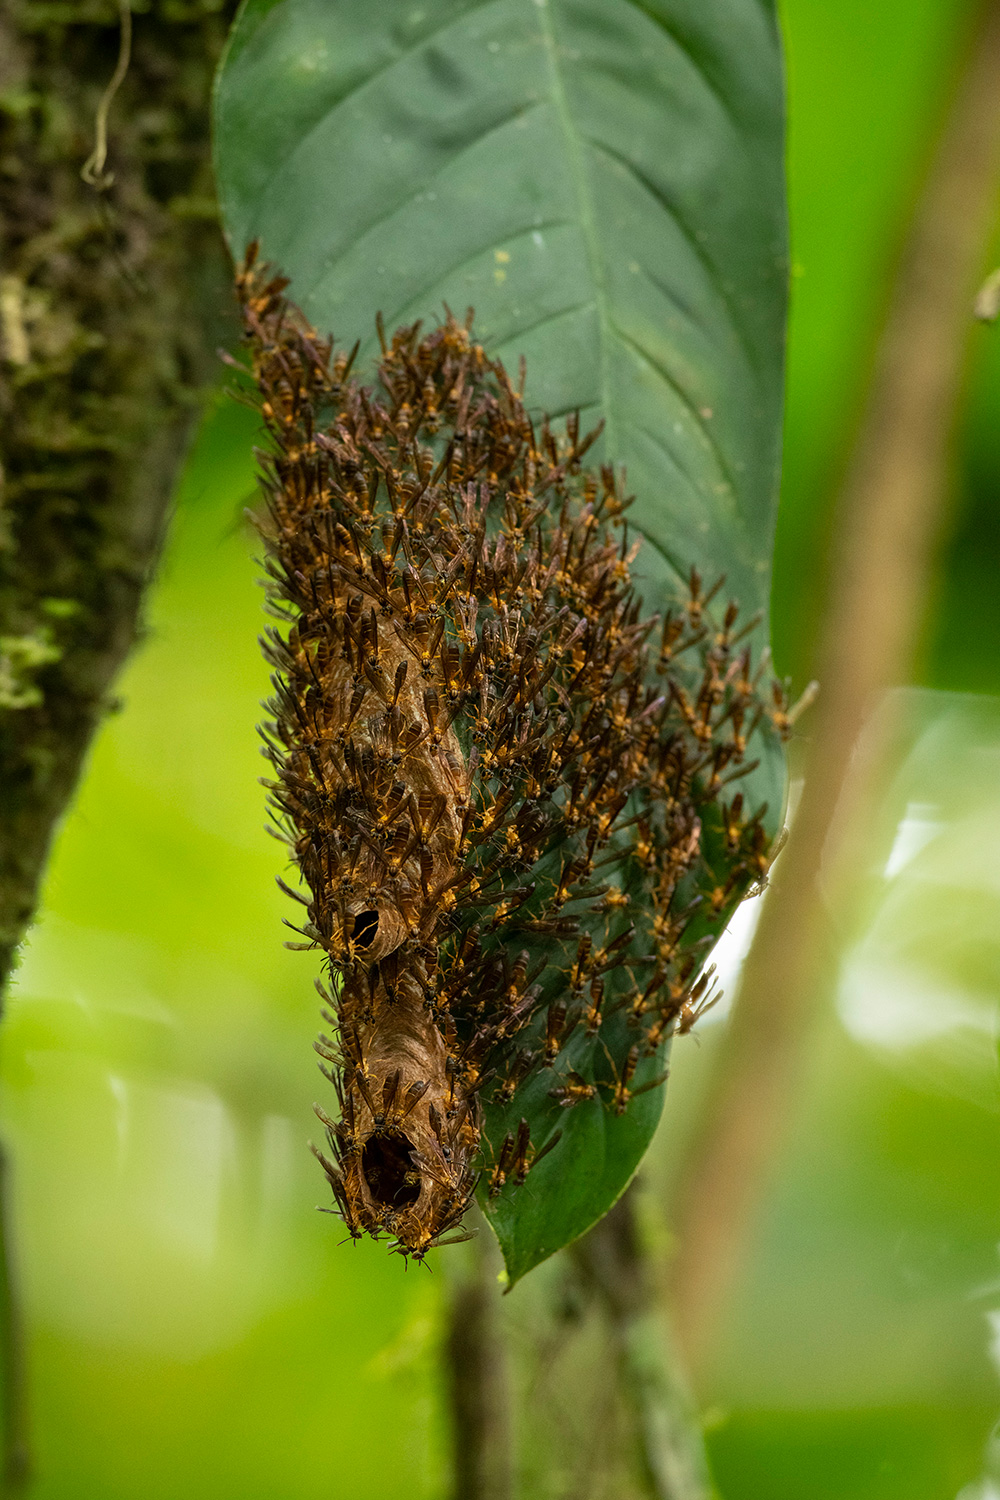 A large group of winged insects cover the end of a large leaf